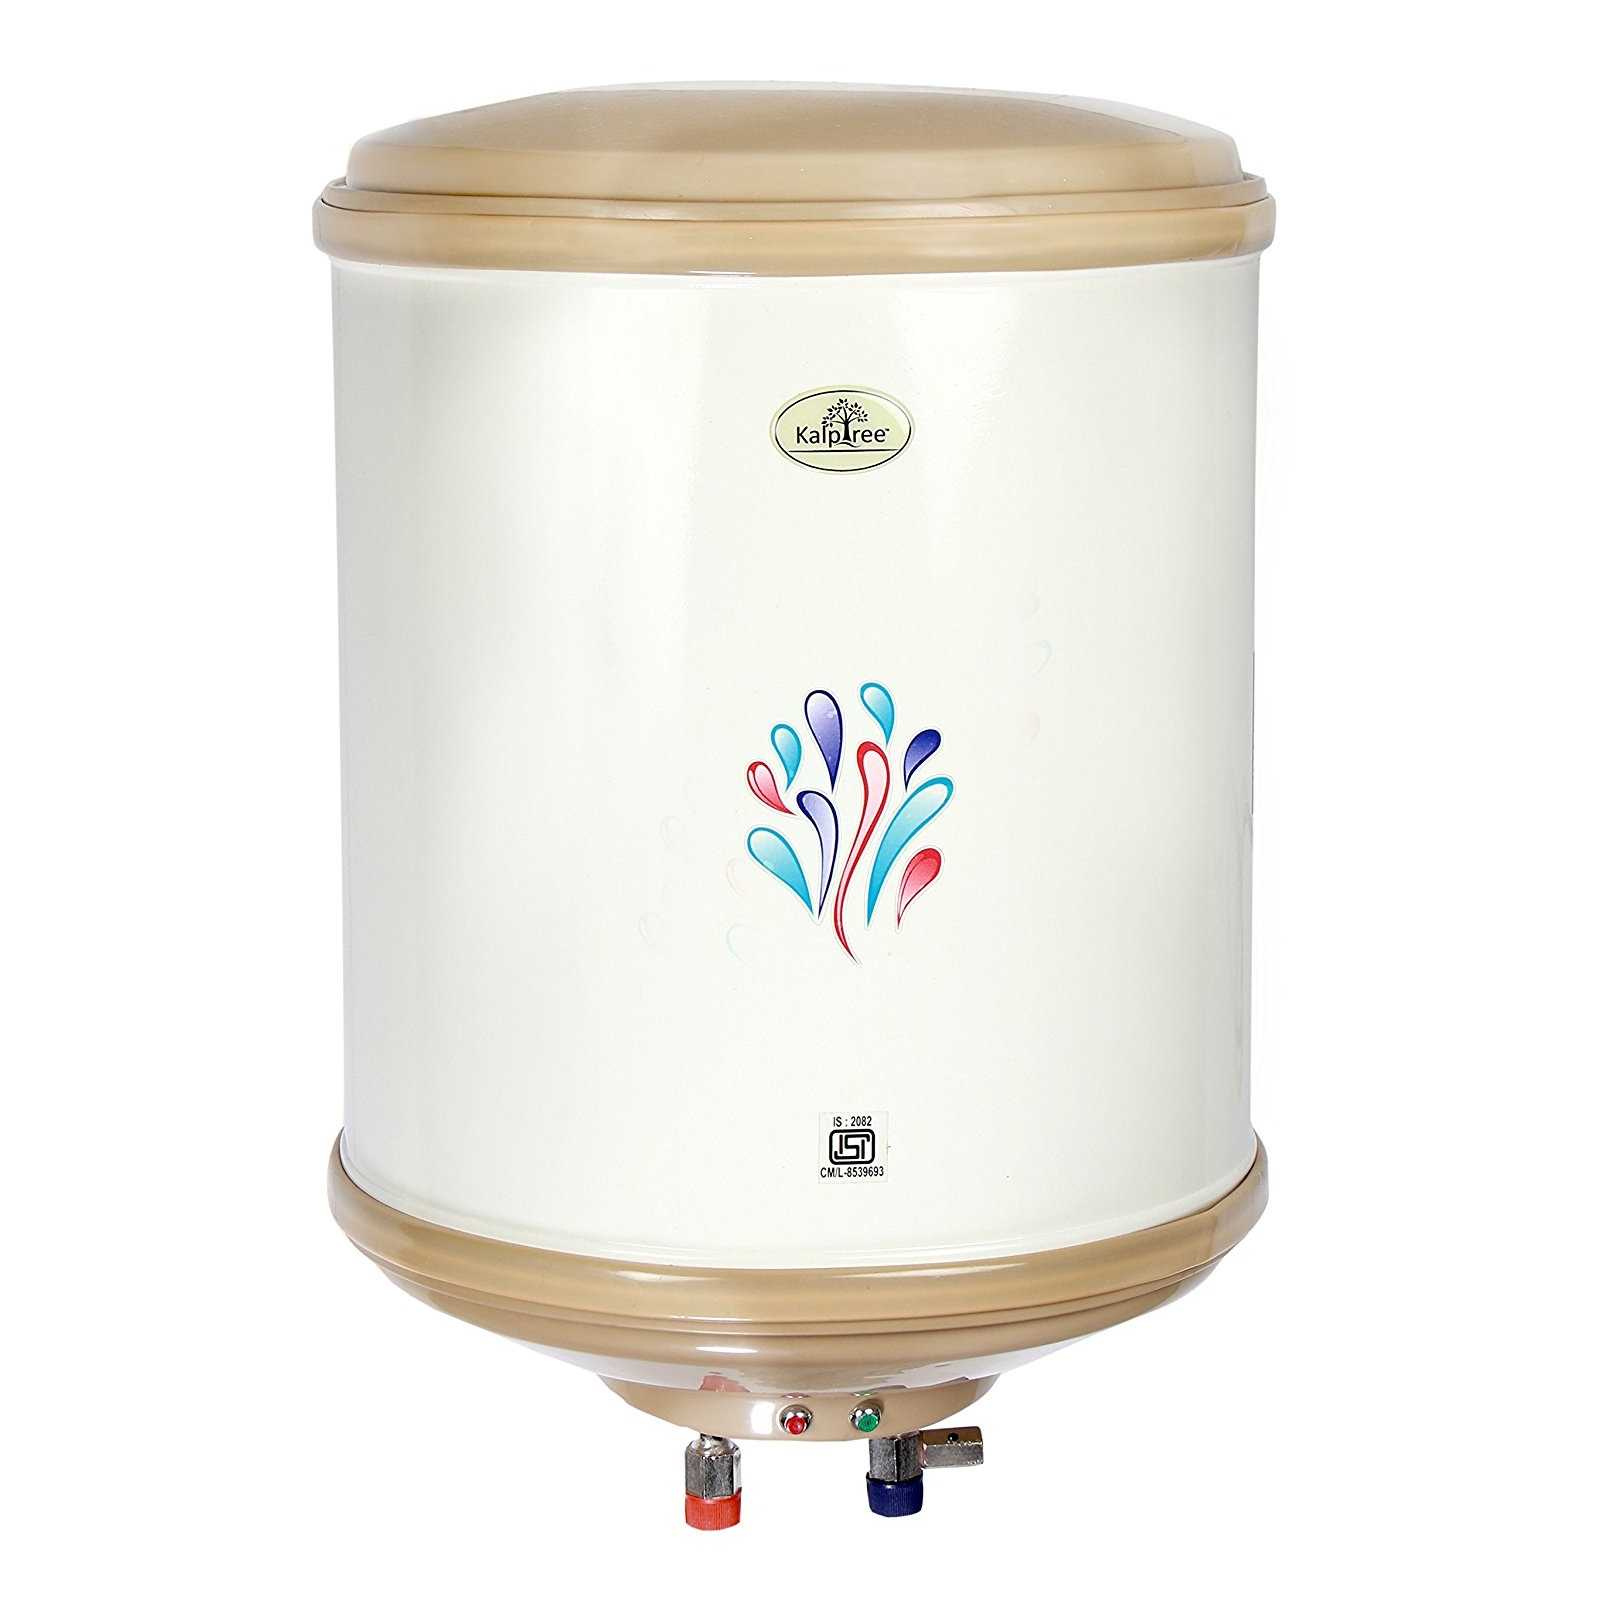 Kalptree Shells 25 Litre Storage Water Heater